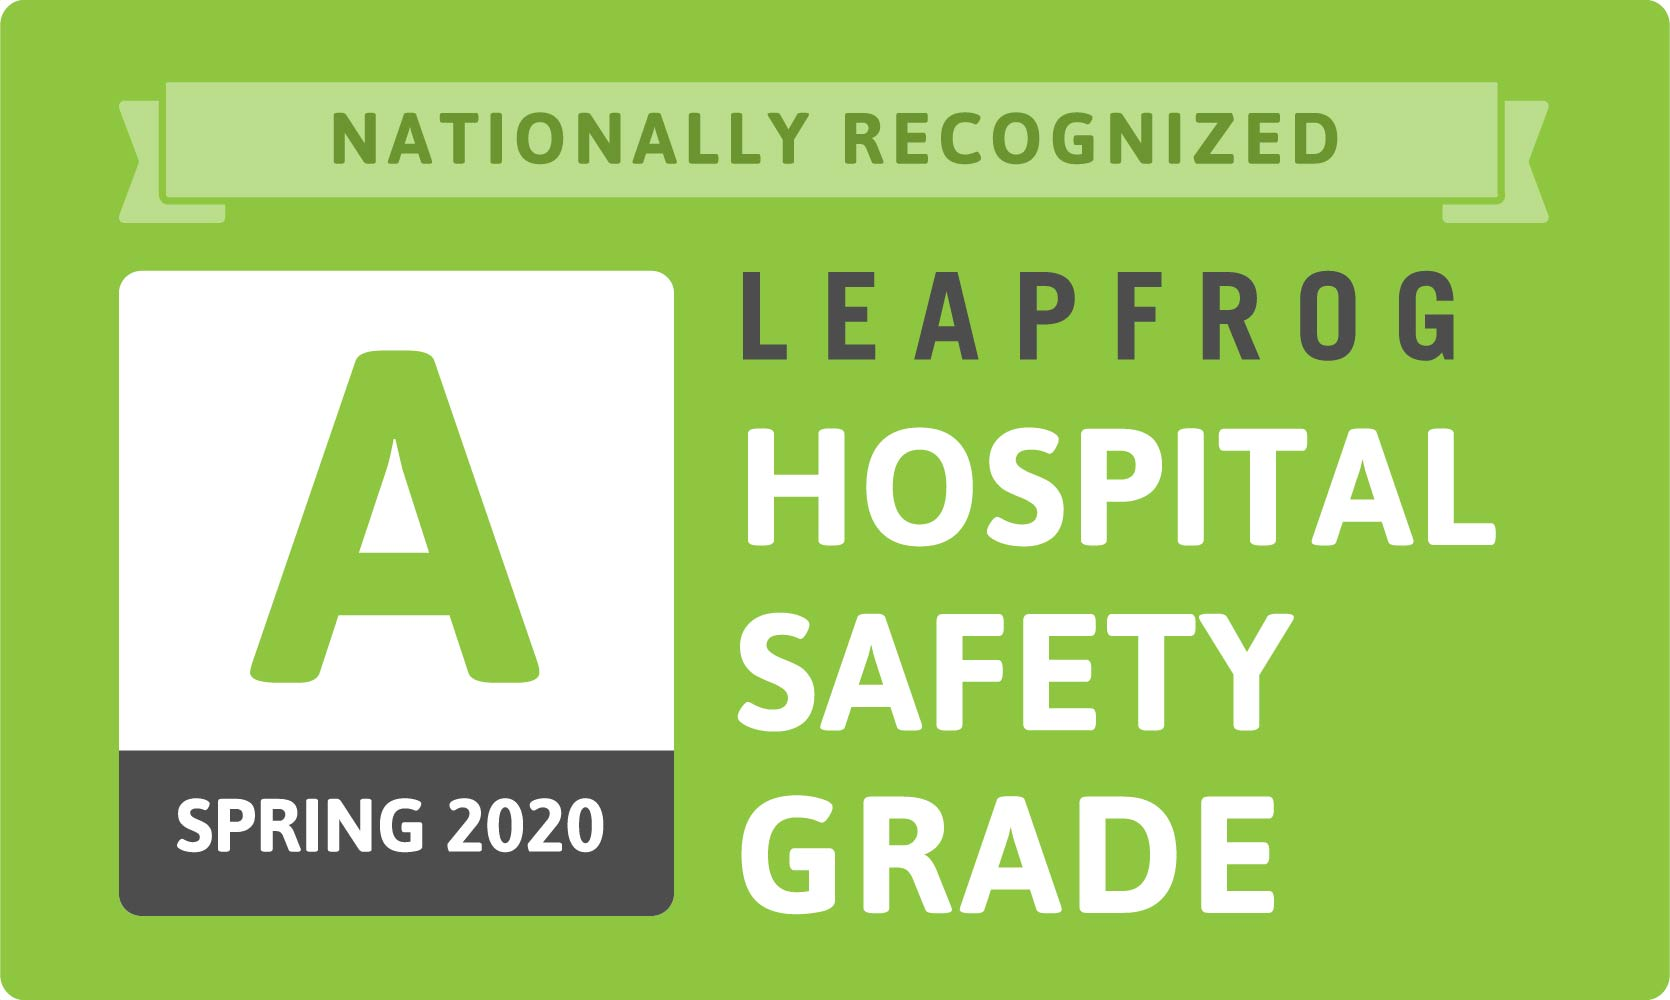 graphic that says nationally recognized spring 2020 leapfrog hospital safety grade